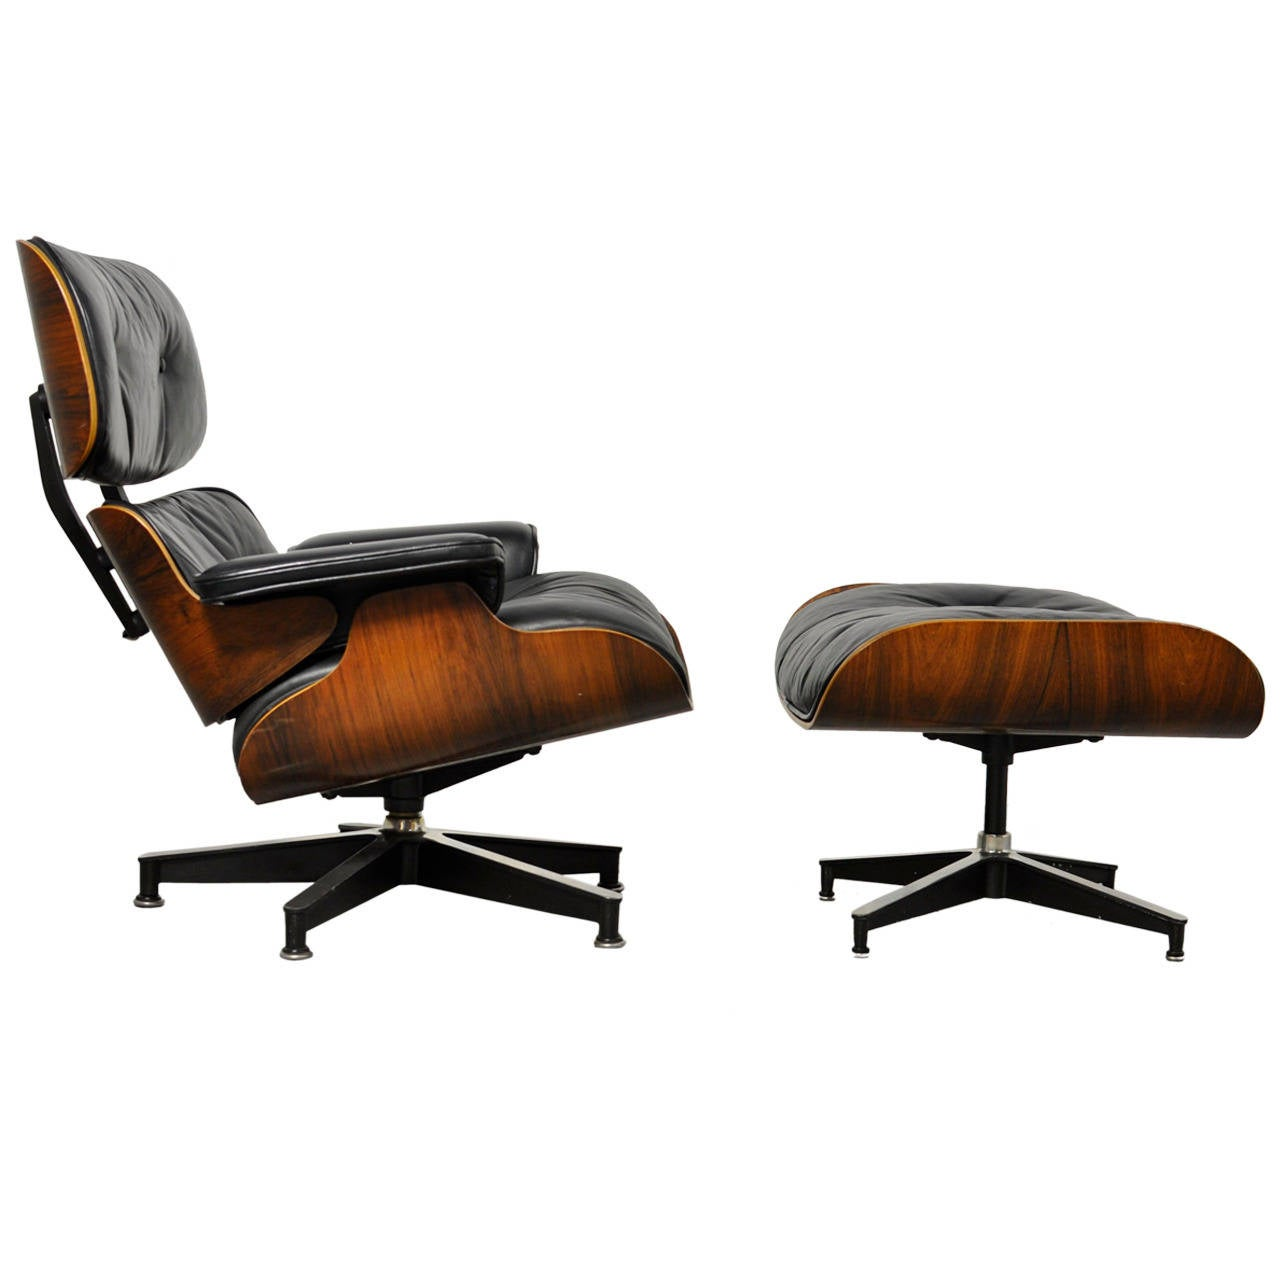 eames lounge chair for sale spandex covers lifetime folding chairs vintage rosewood and ottoman by charles